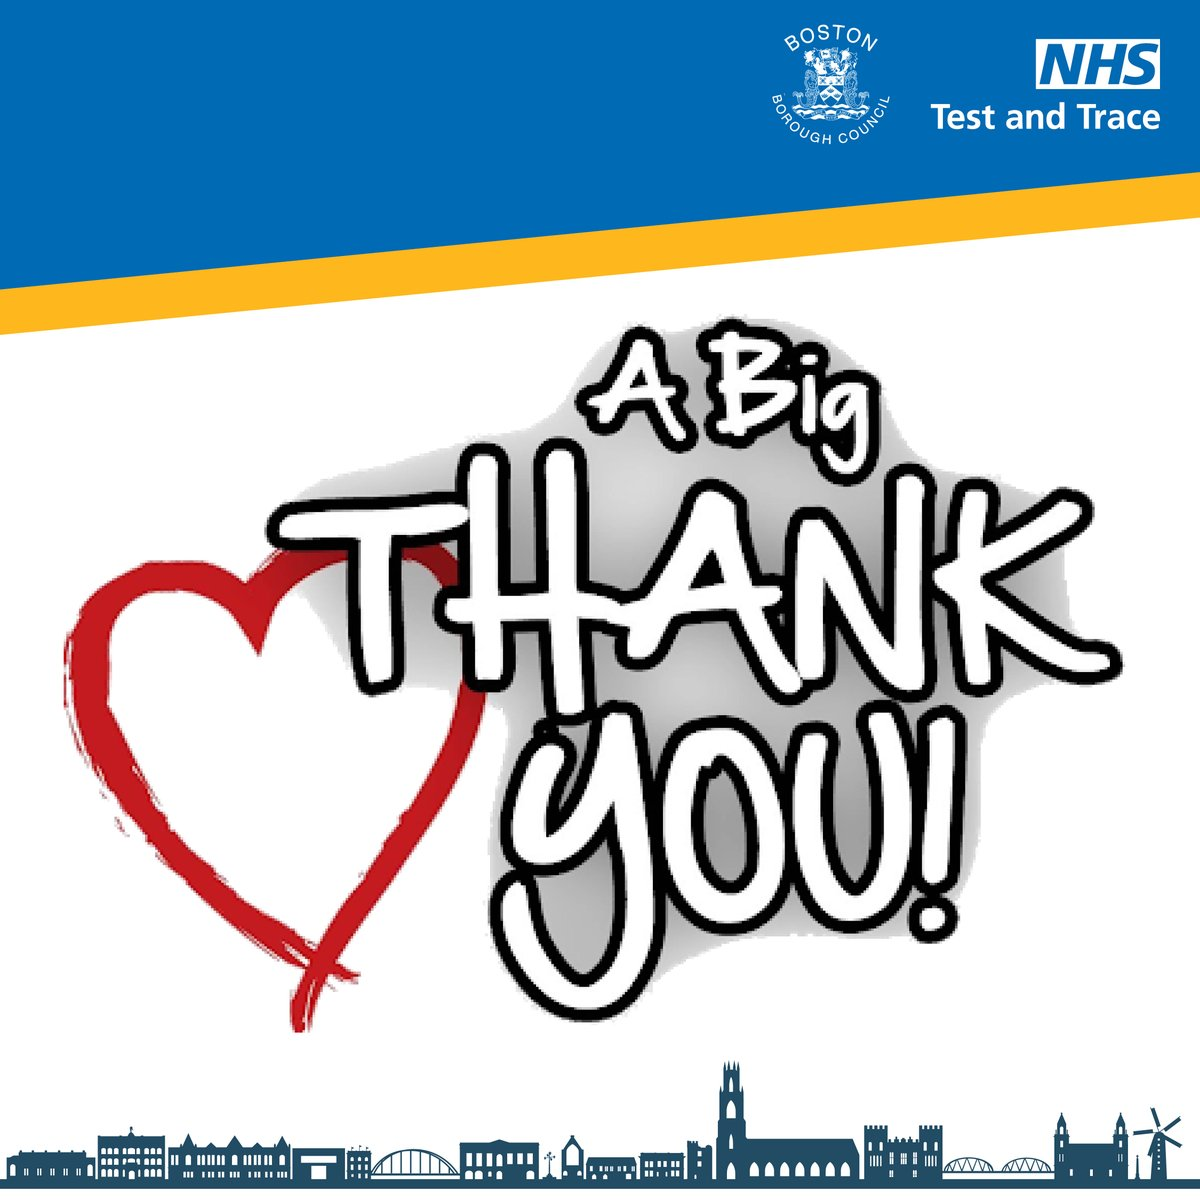 Thank you so much for coming to get tested. We've been humbled to see so many of you getting tested this week.  Let's keep getting tested, and reduce the spread of this virus. We all want to get back to the things we love.  #love #family #letsgettested #ProtectBoston